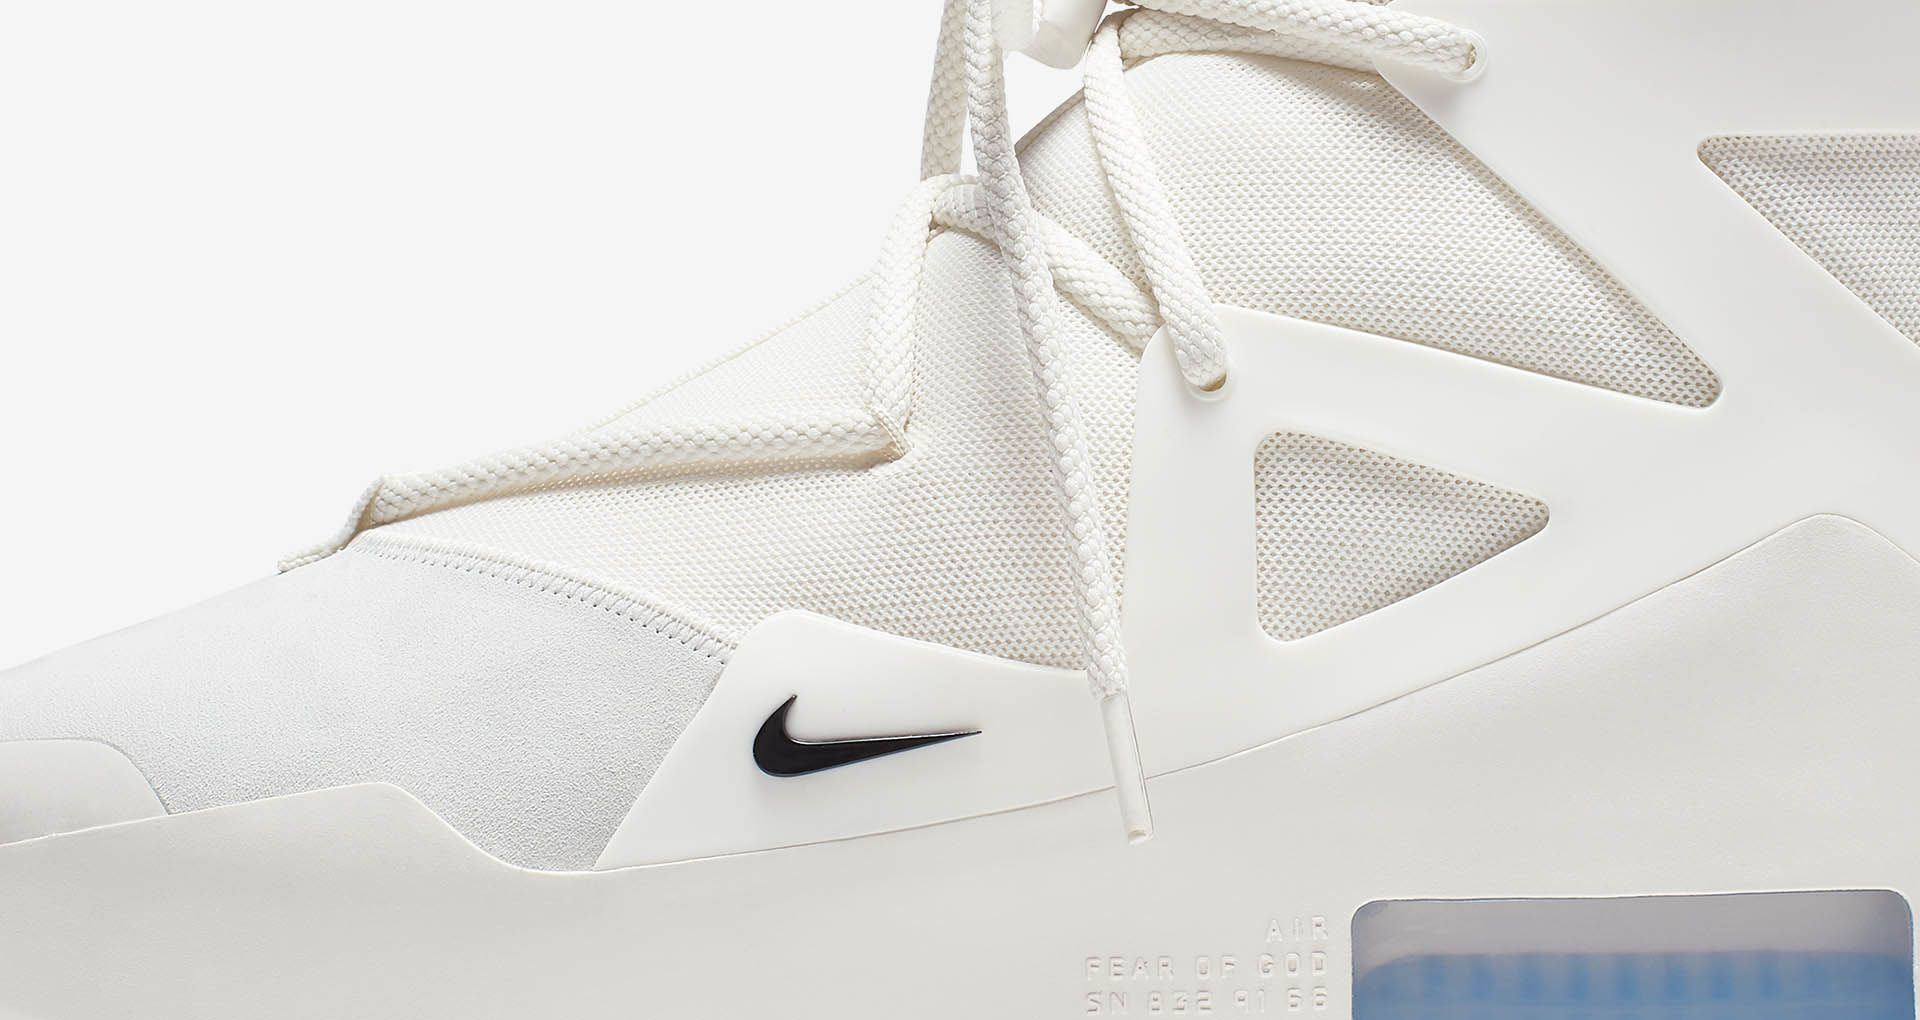 07-nike-air-fear-of-god-1-sail-ar4237-100